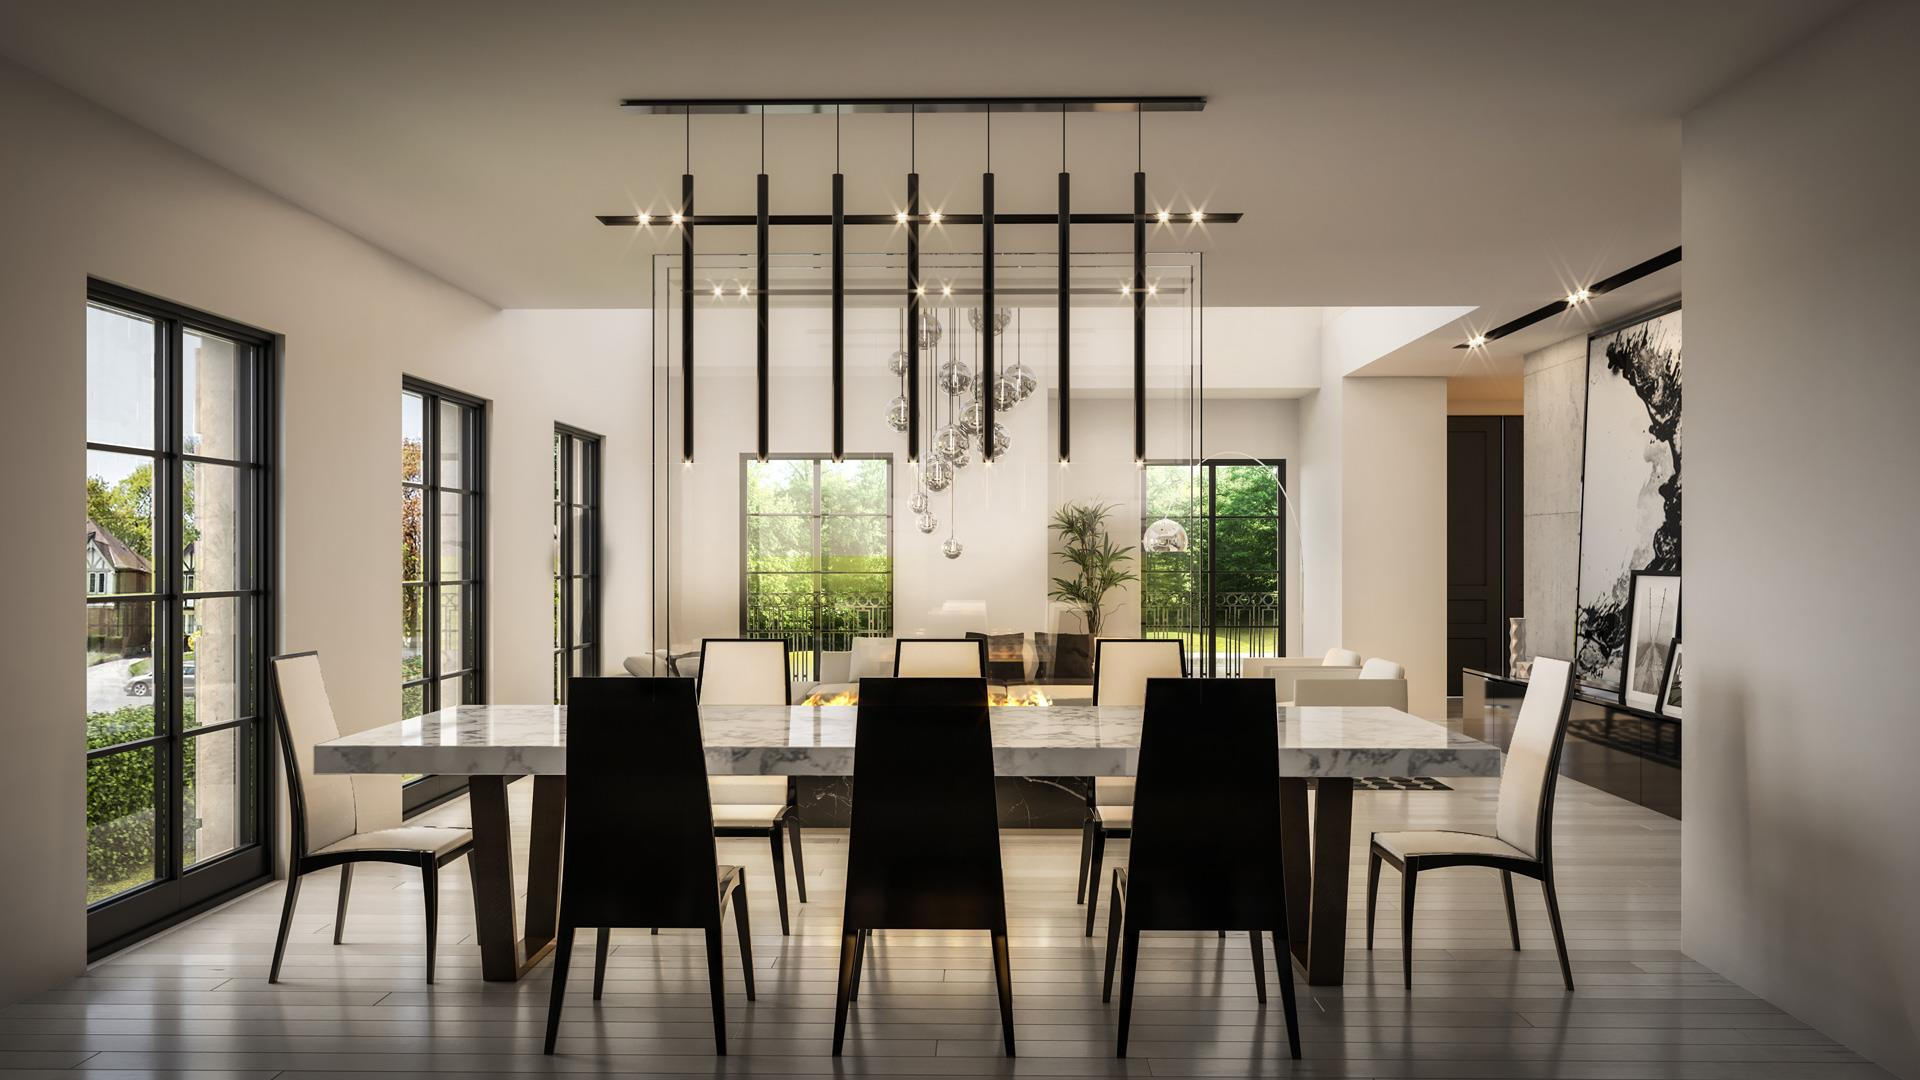 Rendering of 469 Spadina Homes interior dining room.